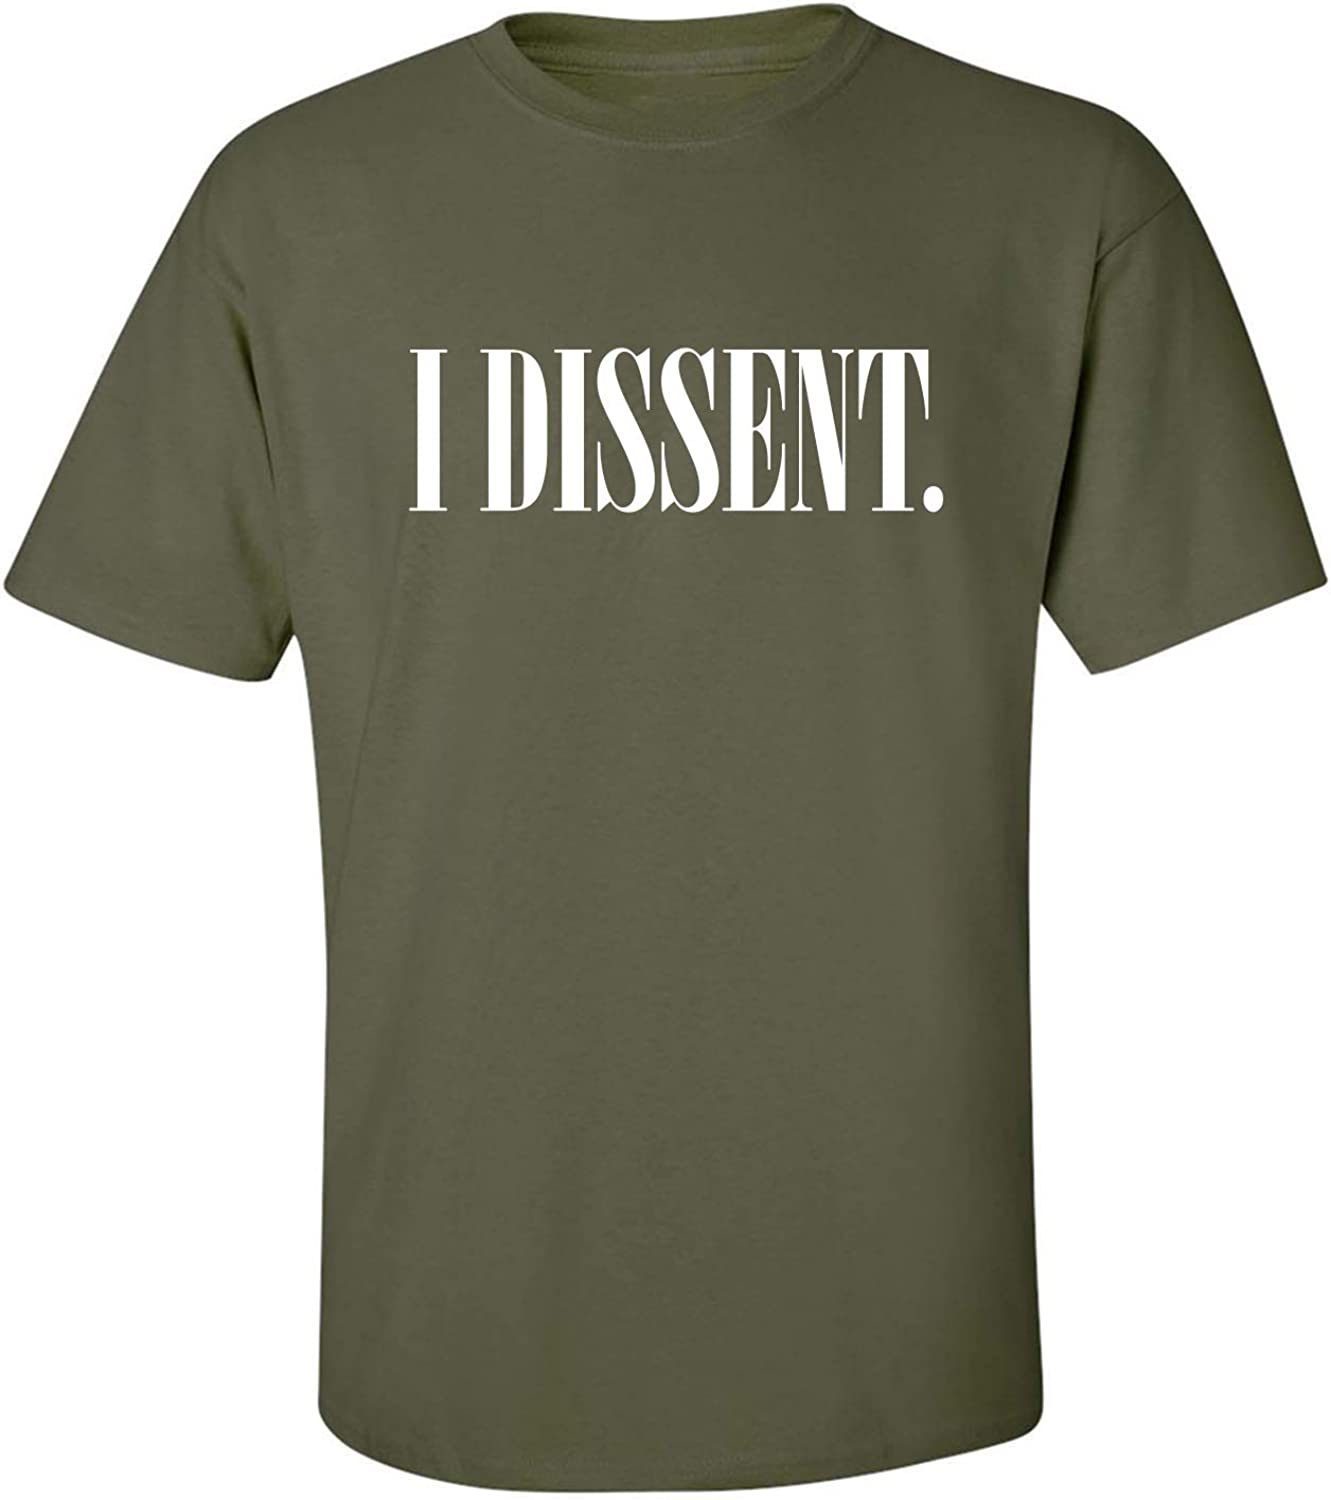 I Dissent Adult T-Shirt in Military Green - XXXXX-Large